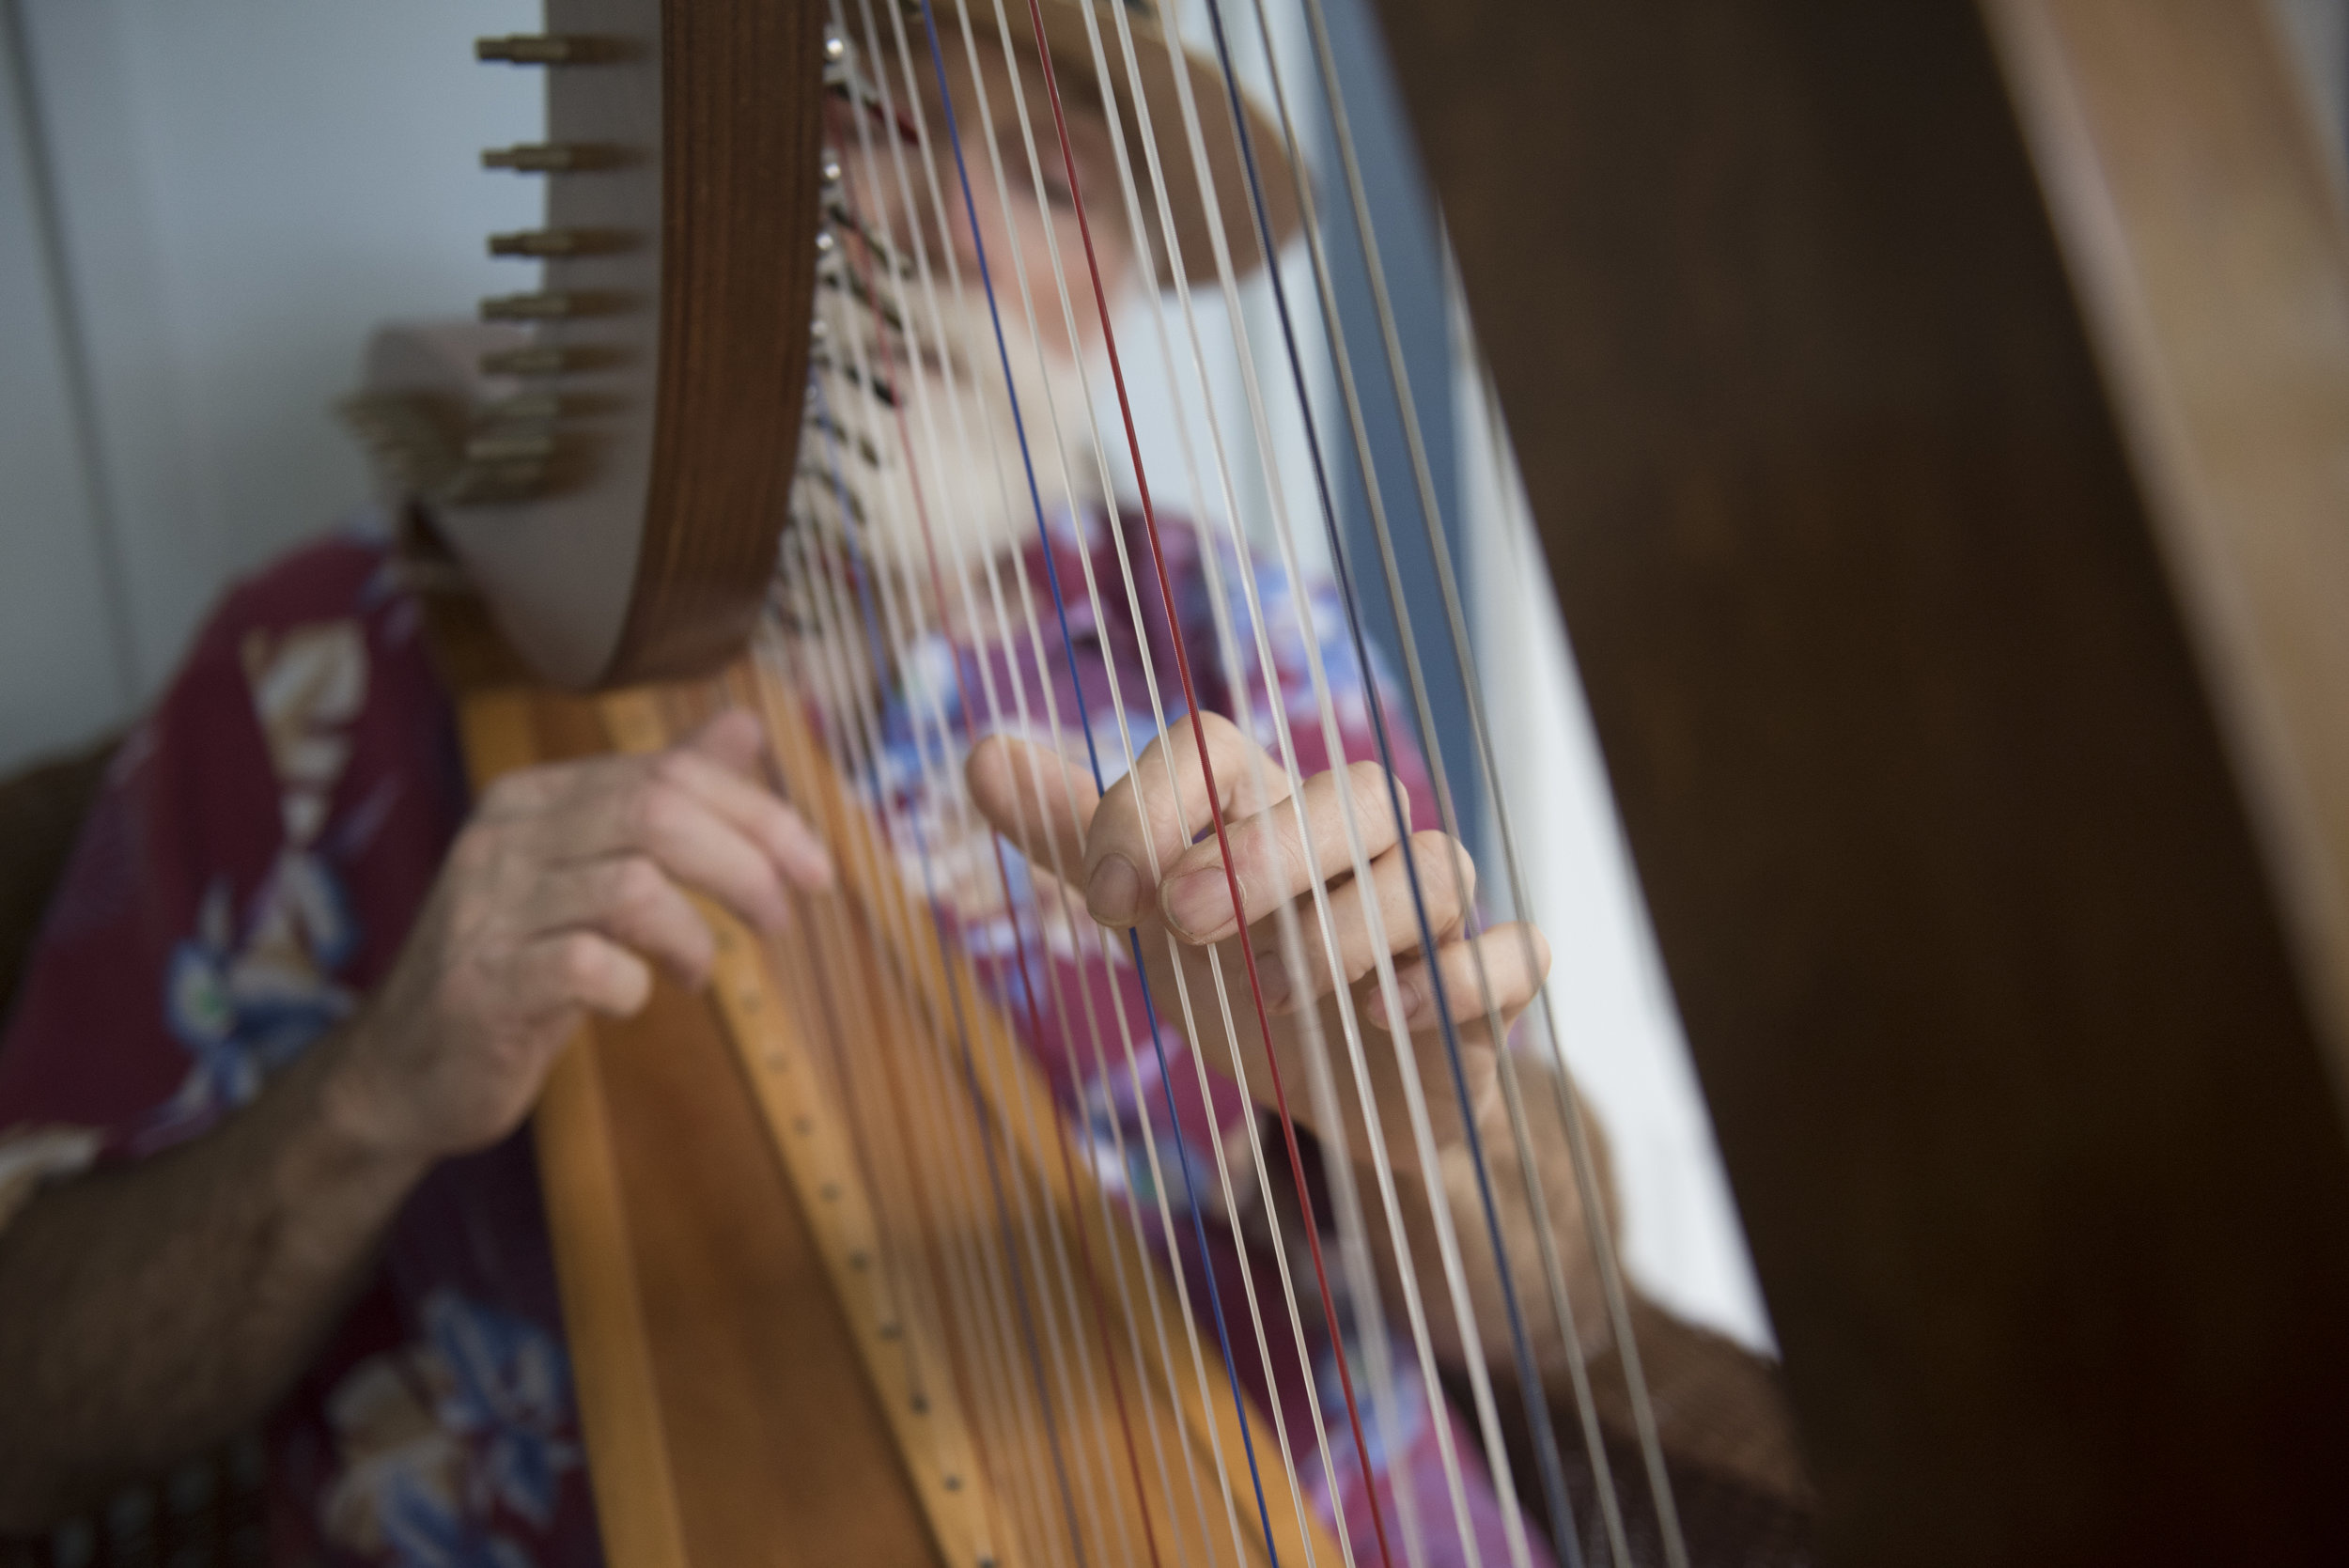 Pat McGee strums his harp outside his home in Athens, Ohio on Sept. 3, 2017. McGee often can be spotted around Athens playing his harp, usually with a small crowd watching.